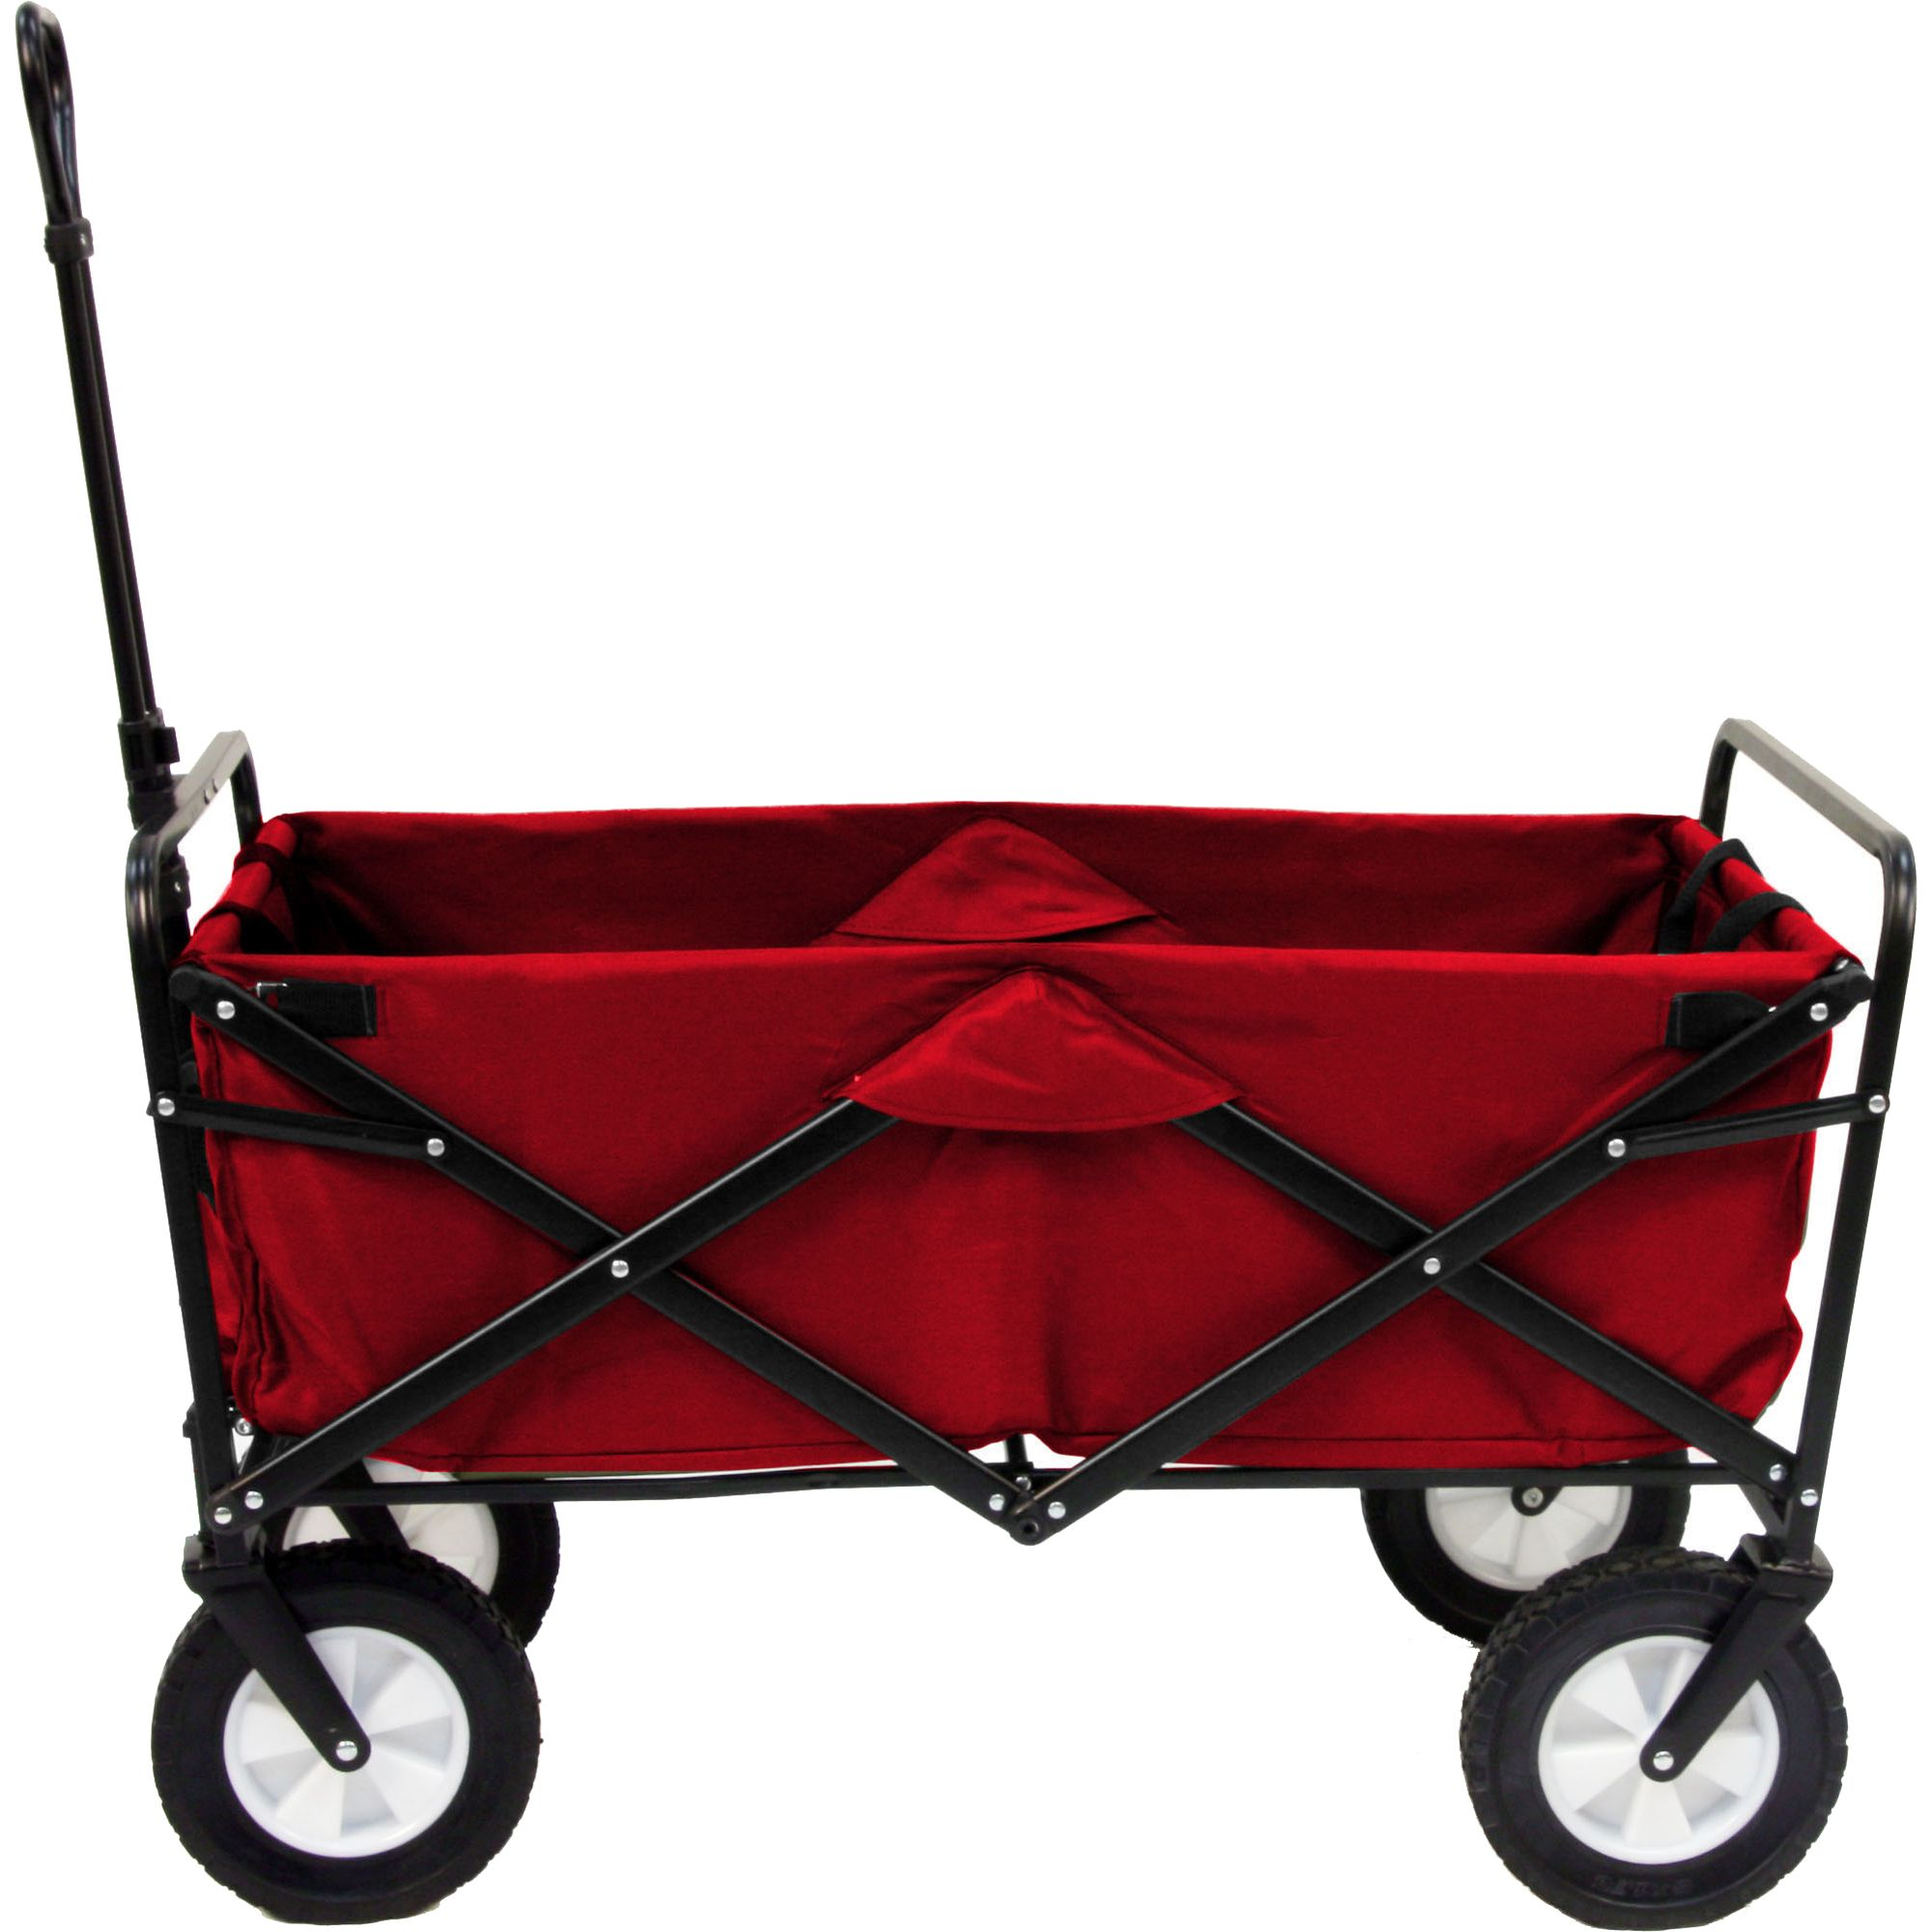 Sporting Goods Stores Folding Wagon - Red